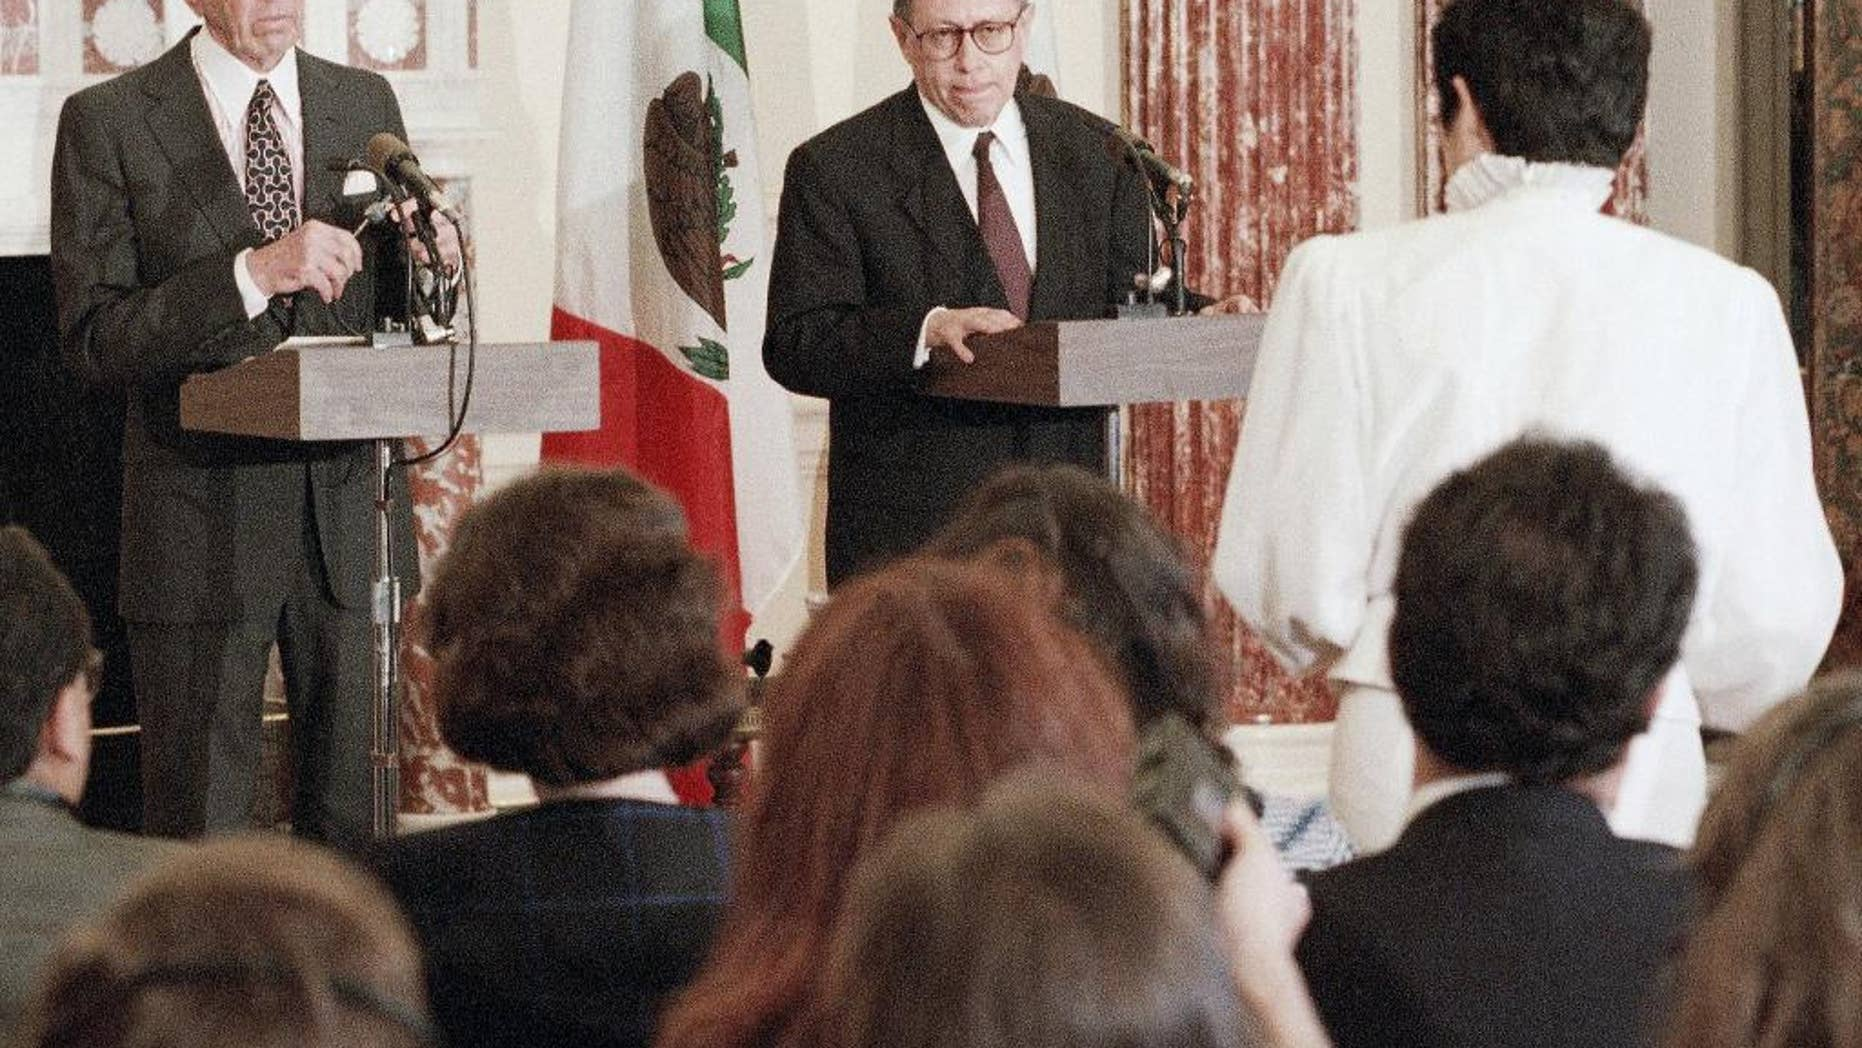 FILE - In this June 21, 1993, file photo, Secretary of State Warren Christopher and Mexico's Secretary for Foreign Affairs Fernando Solana, center, take part in a news conference at the State Department in Washington on Monday, after a meeting of the U.S. Mexico Binational Commission. Solana who was foreign minister for President Carlos Salinas de Gortari from 1988 to 1993, and worked on the free trade agreement that created what was the then the world's largest free-trade block, died Wednesday, March 23, 2016. (AP Photo/Greg Gibson, File)